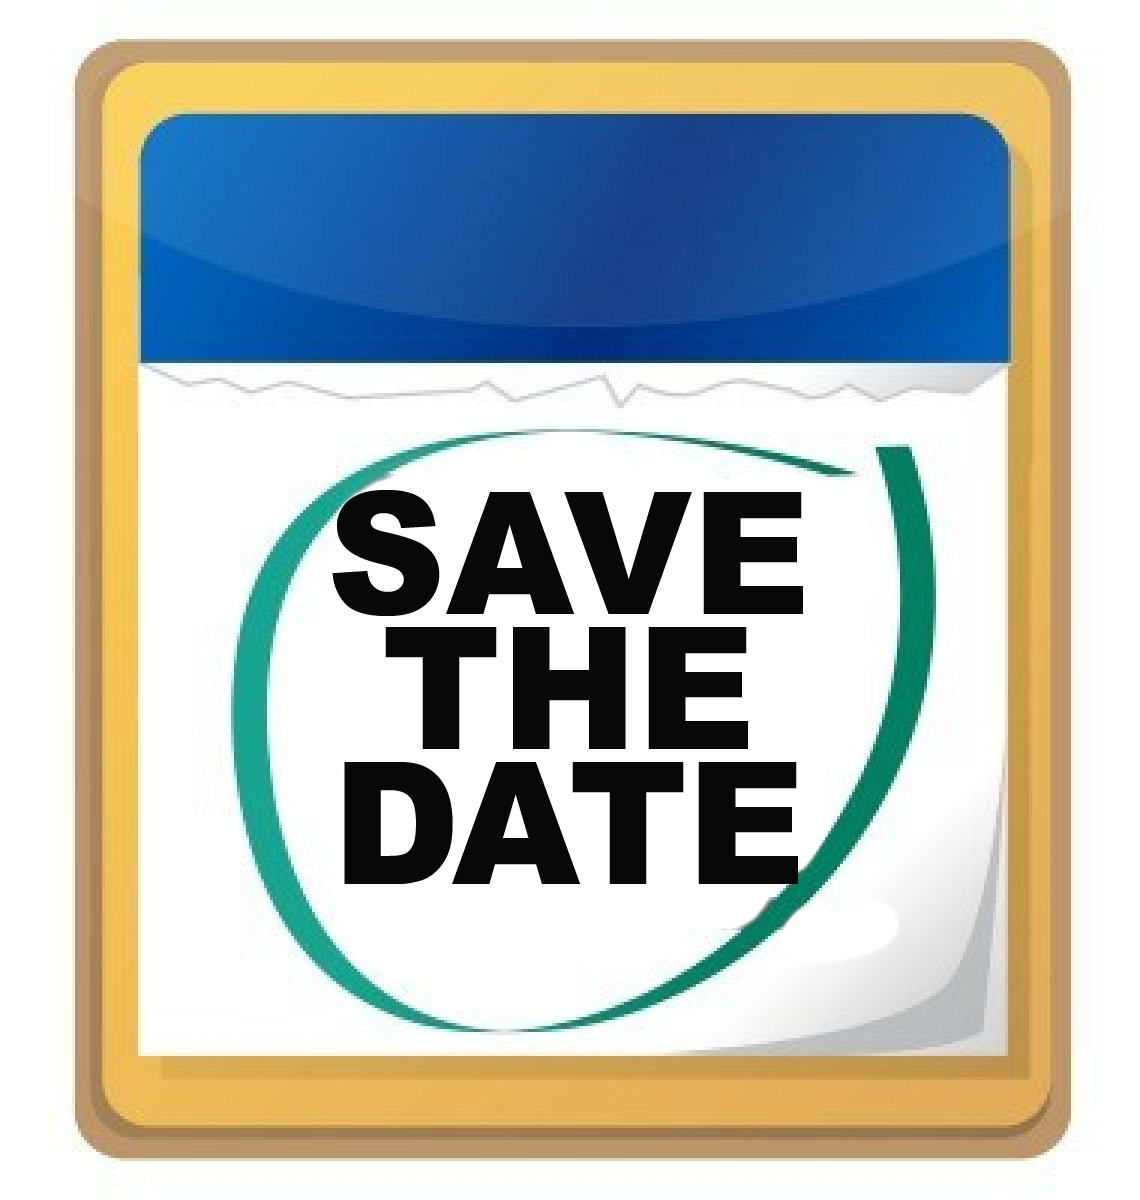 Save The Date Free Clip Art.